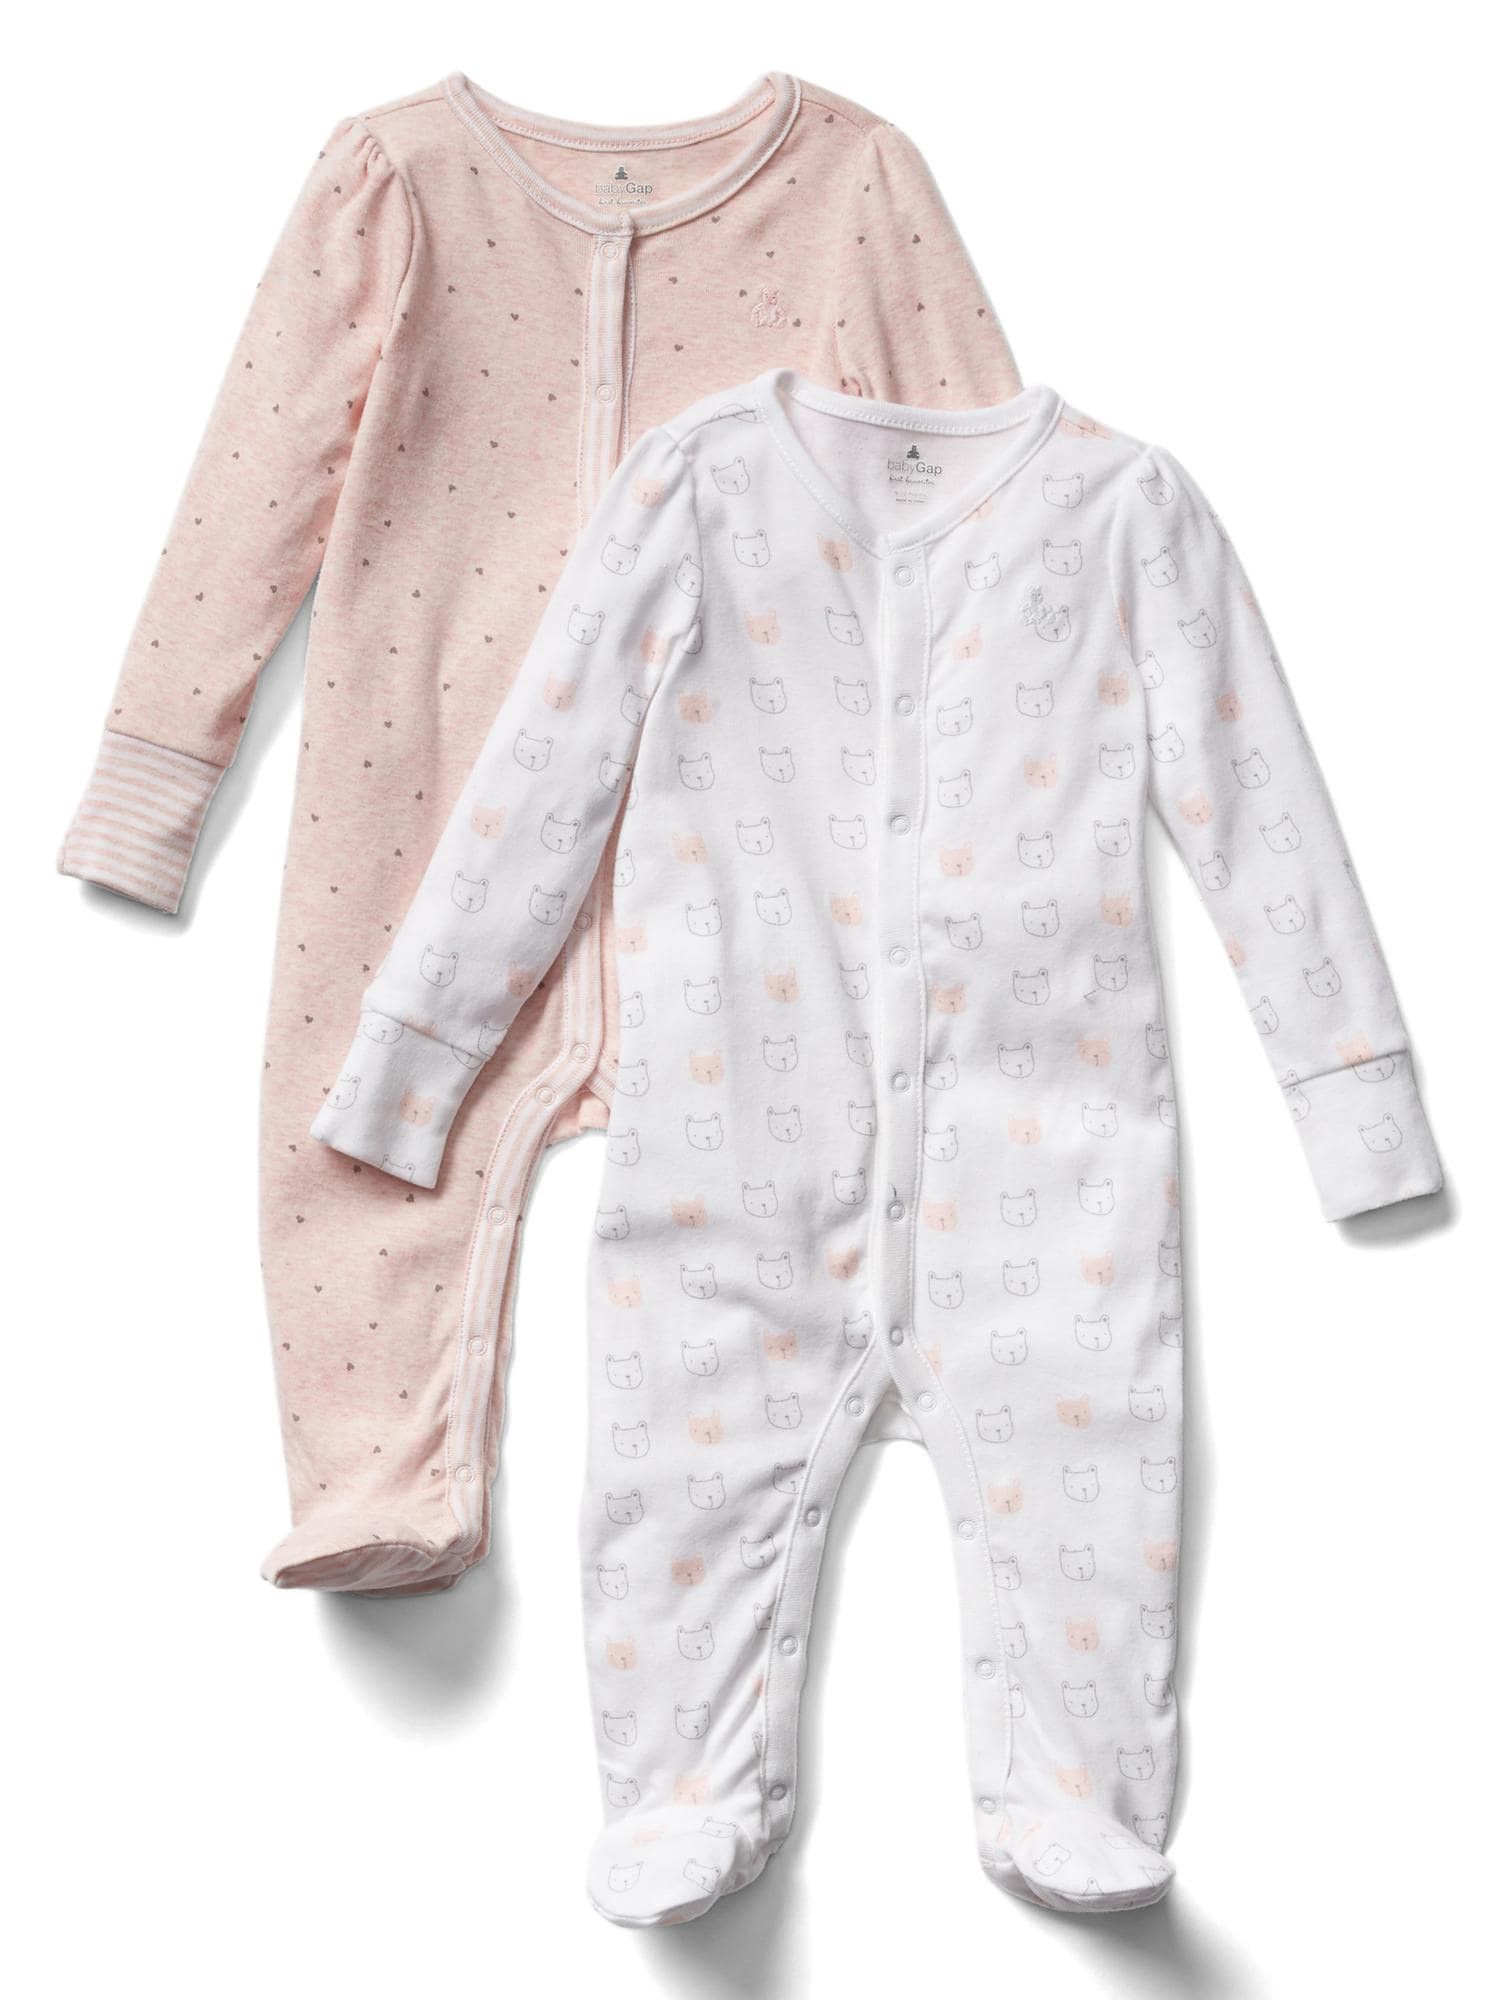 9383dee71246 Gap Baby Favorite Bear Footed One-Piece (2-Pack) - 0-3 M